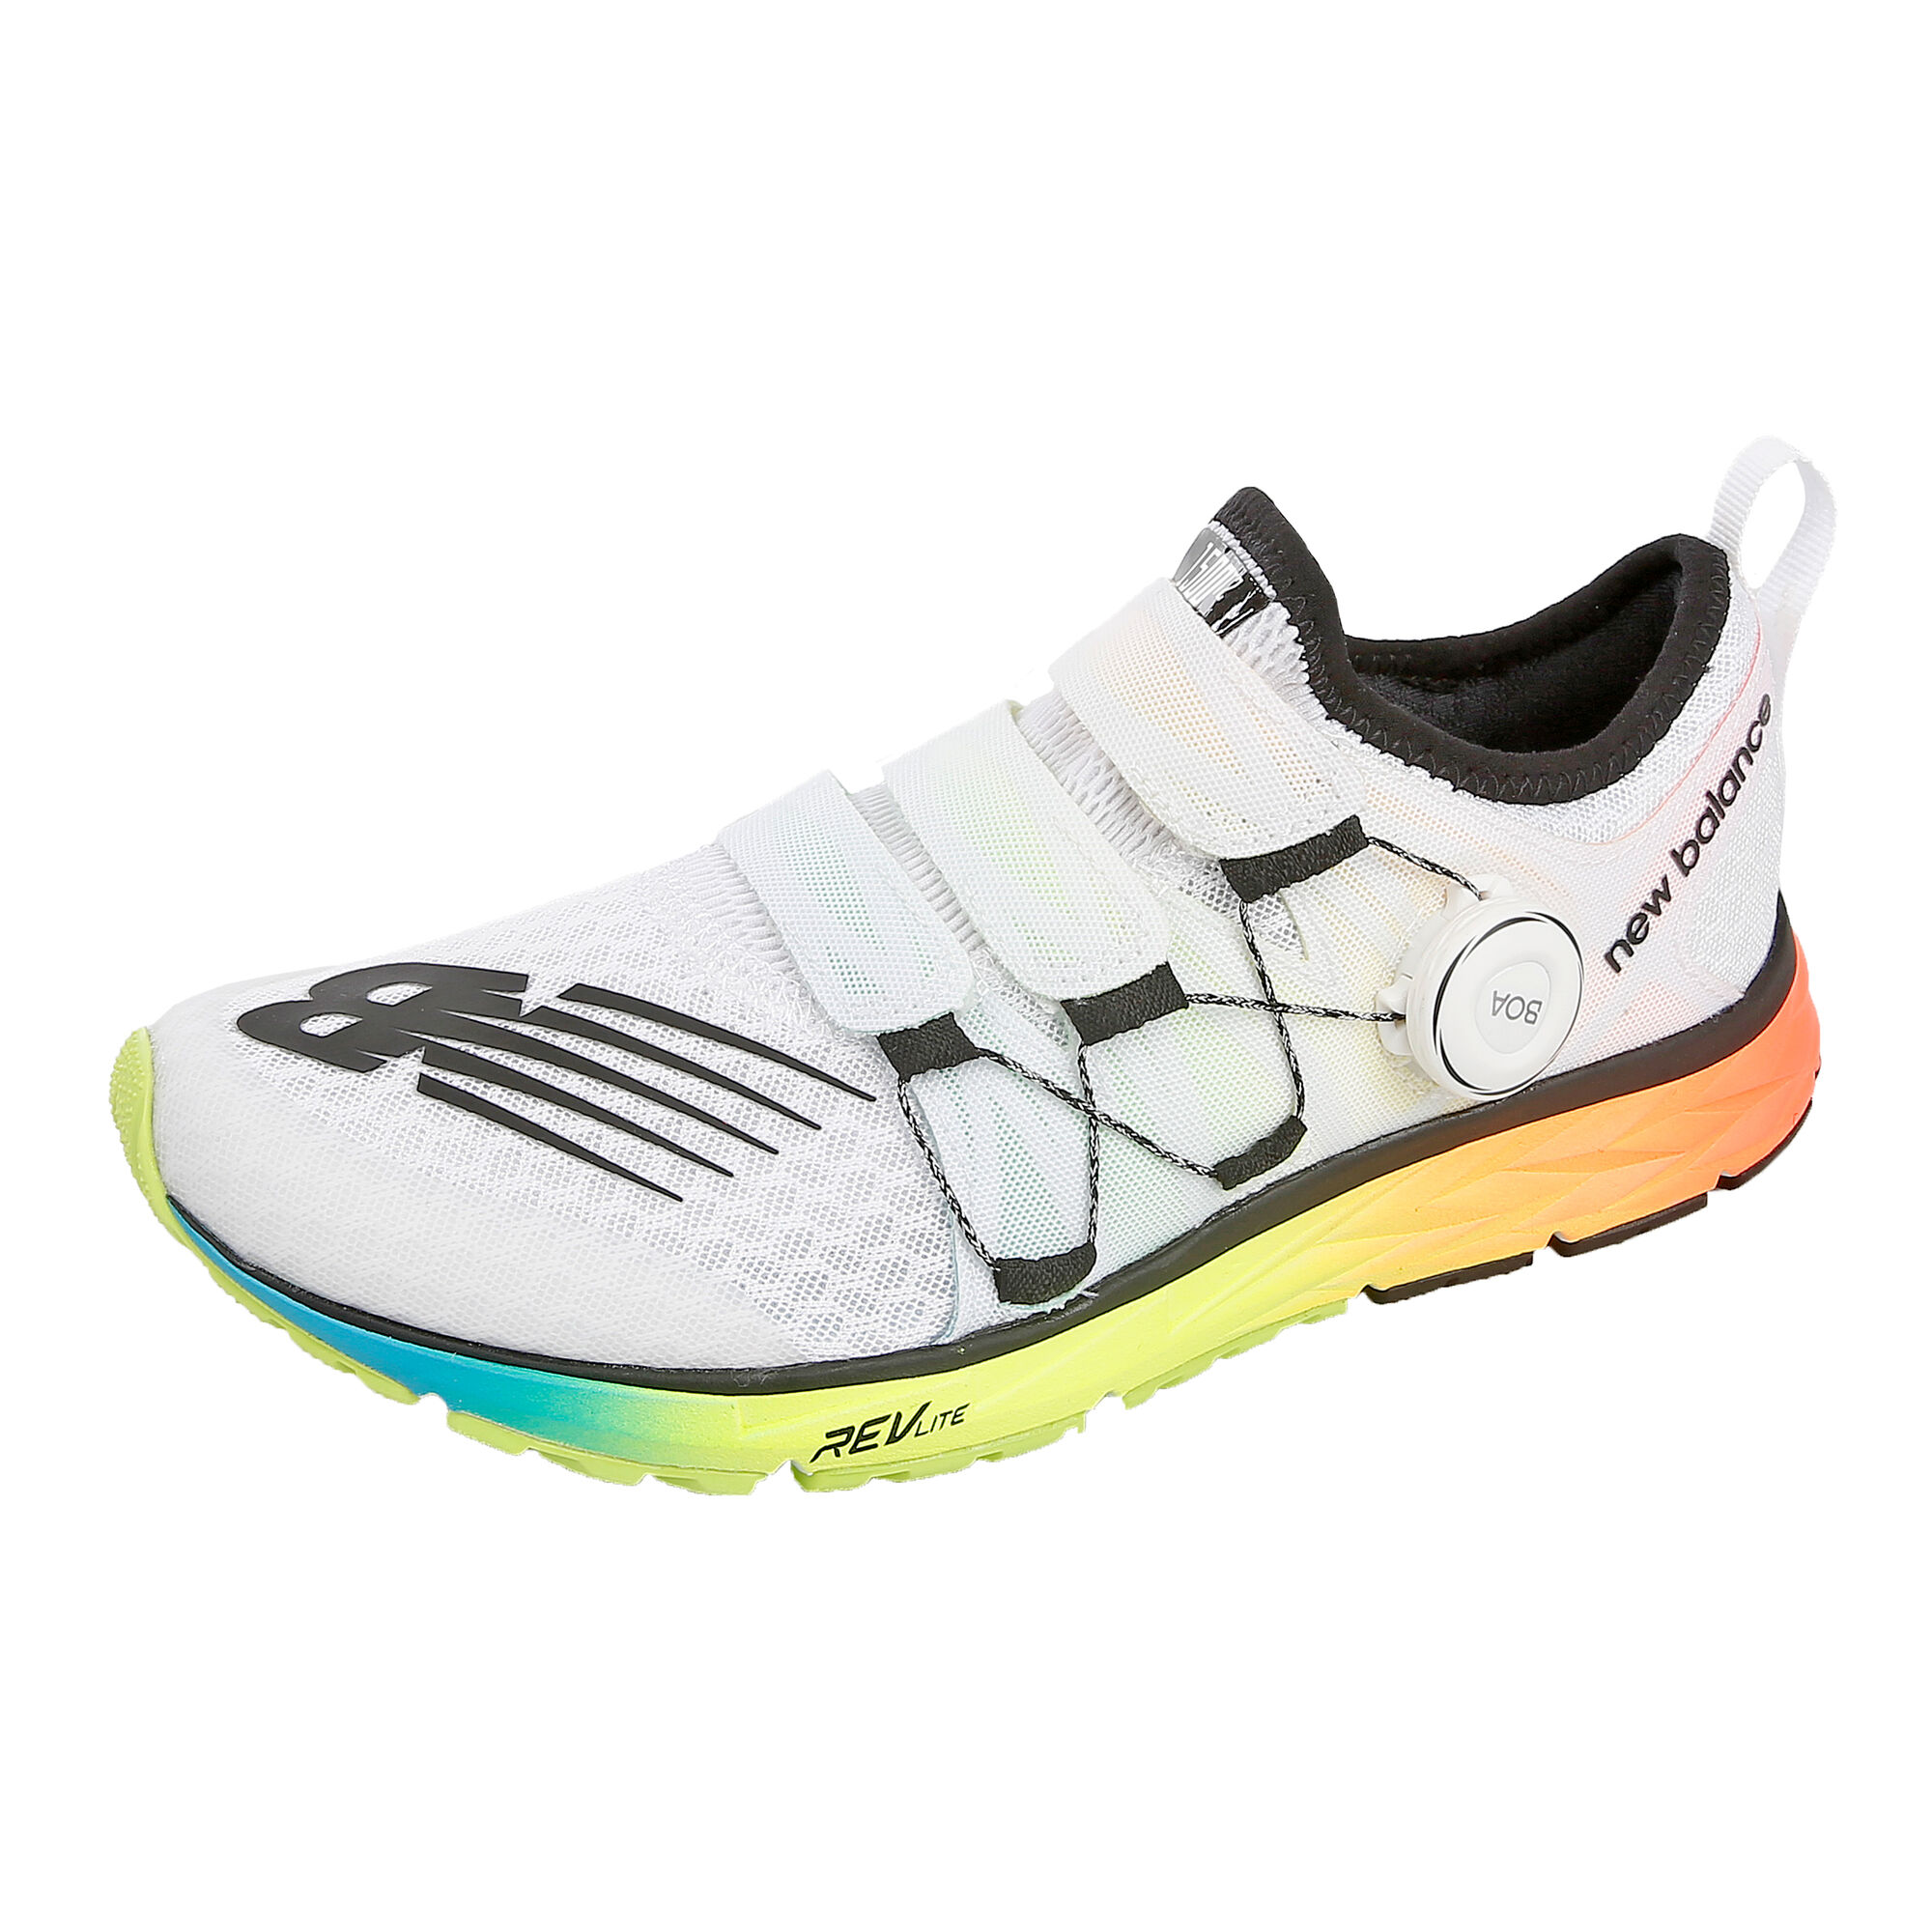 sale retailer 9191d 7465f buy New Balance Race 1500 V4 BOA Competition Running Shoe ...